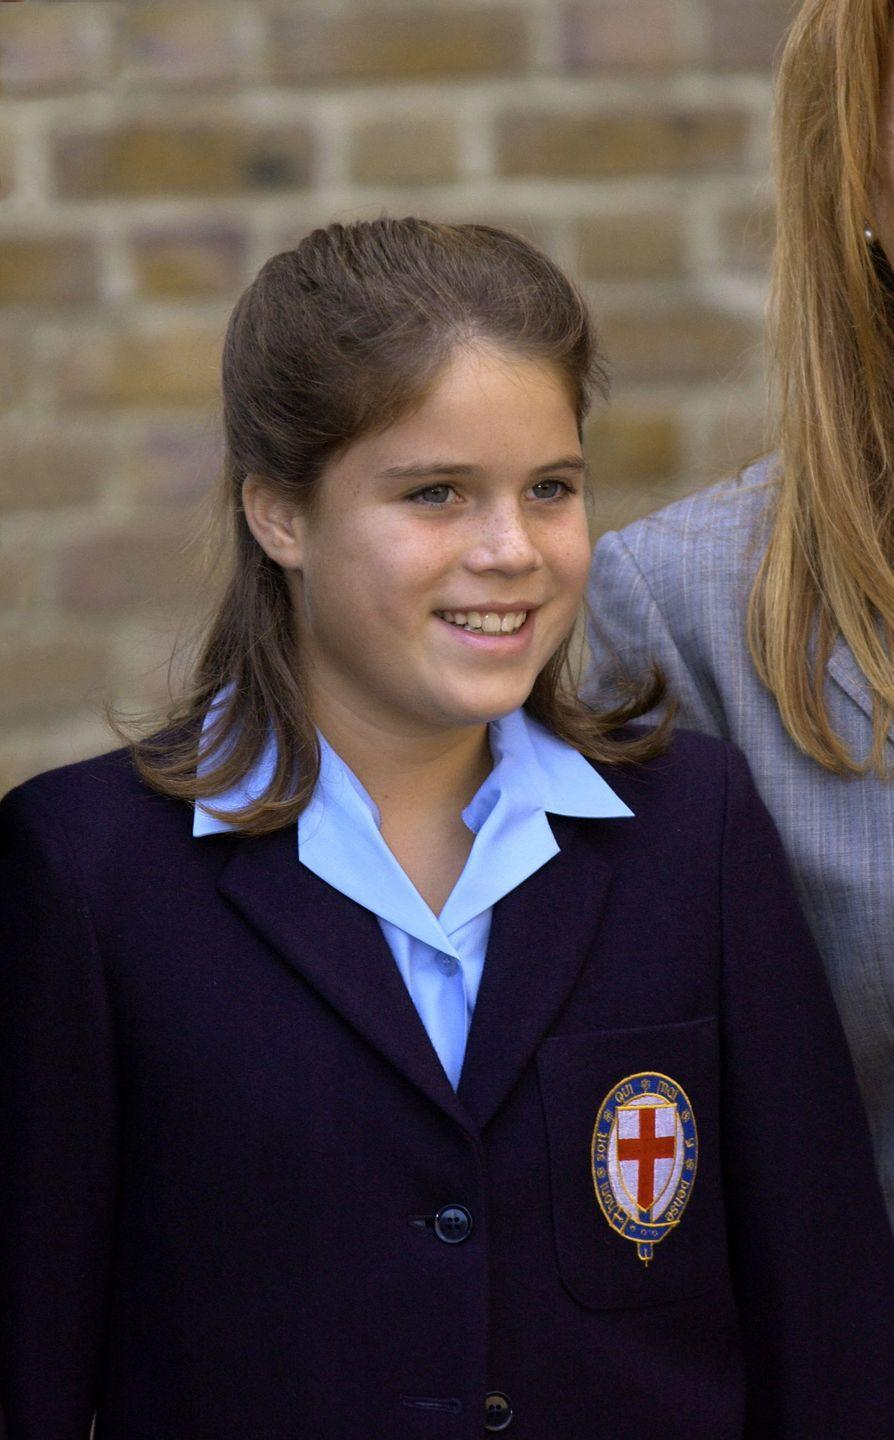 <p>Princess Eugenie started secondary school at St Georges in Windsor on September 6, 2001 - a year after her sister.</p>